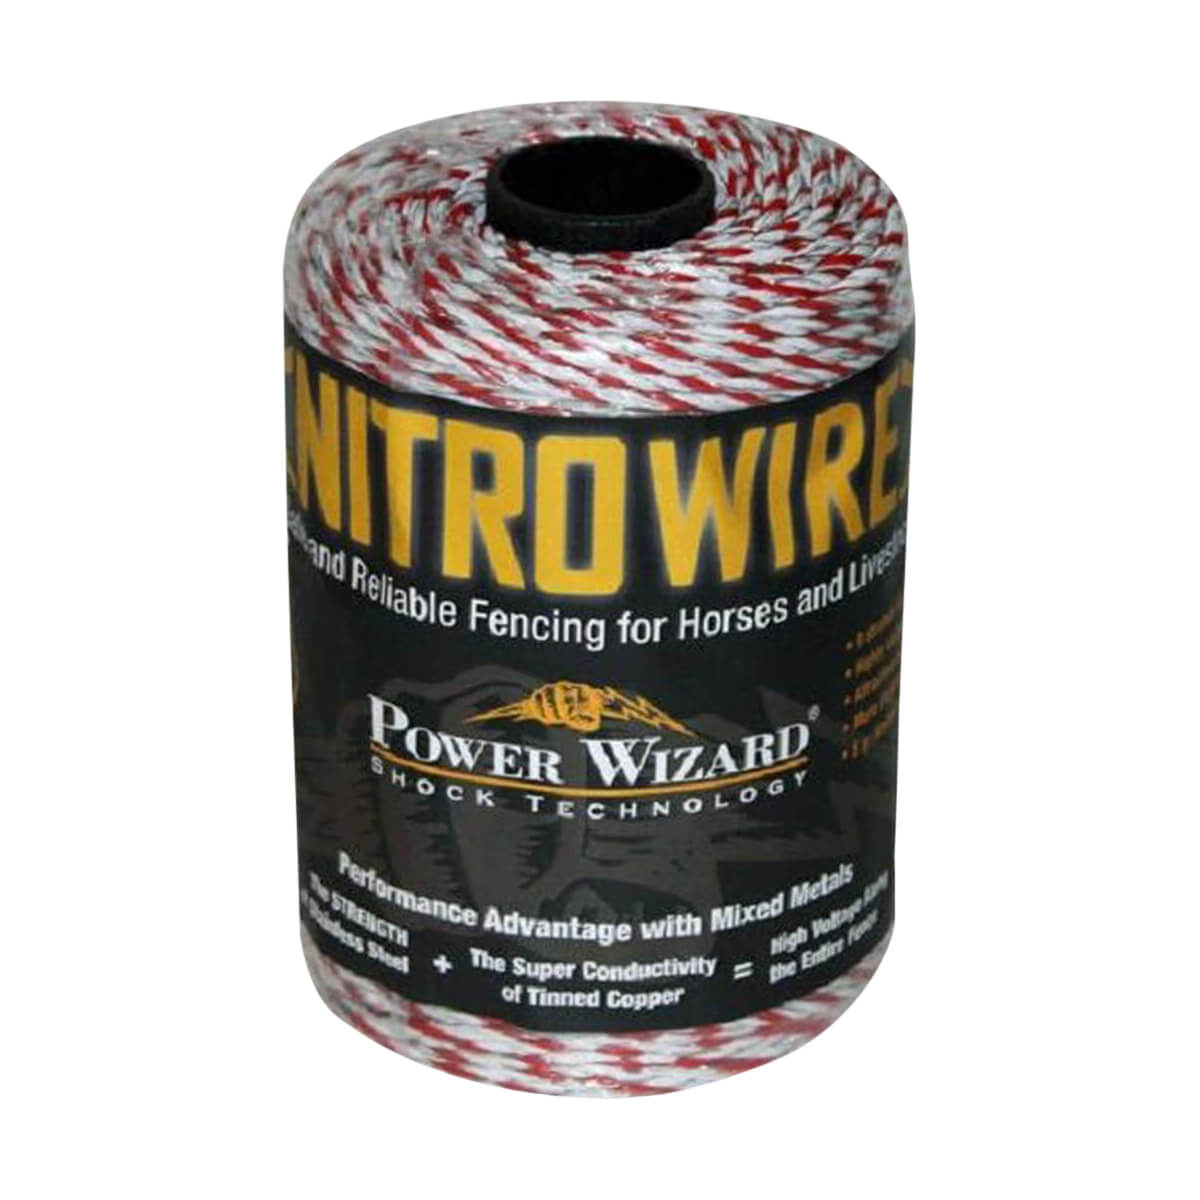 Power Wizard 200 m 9 Strand Nitro Wire NW-1